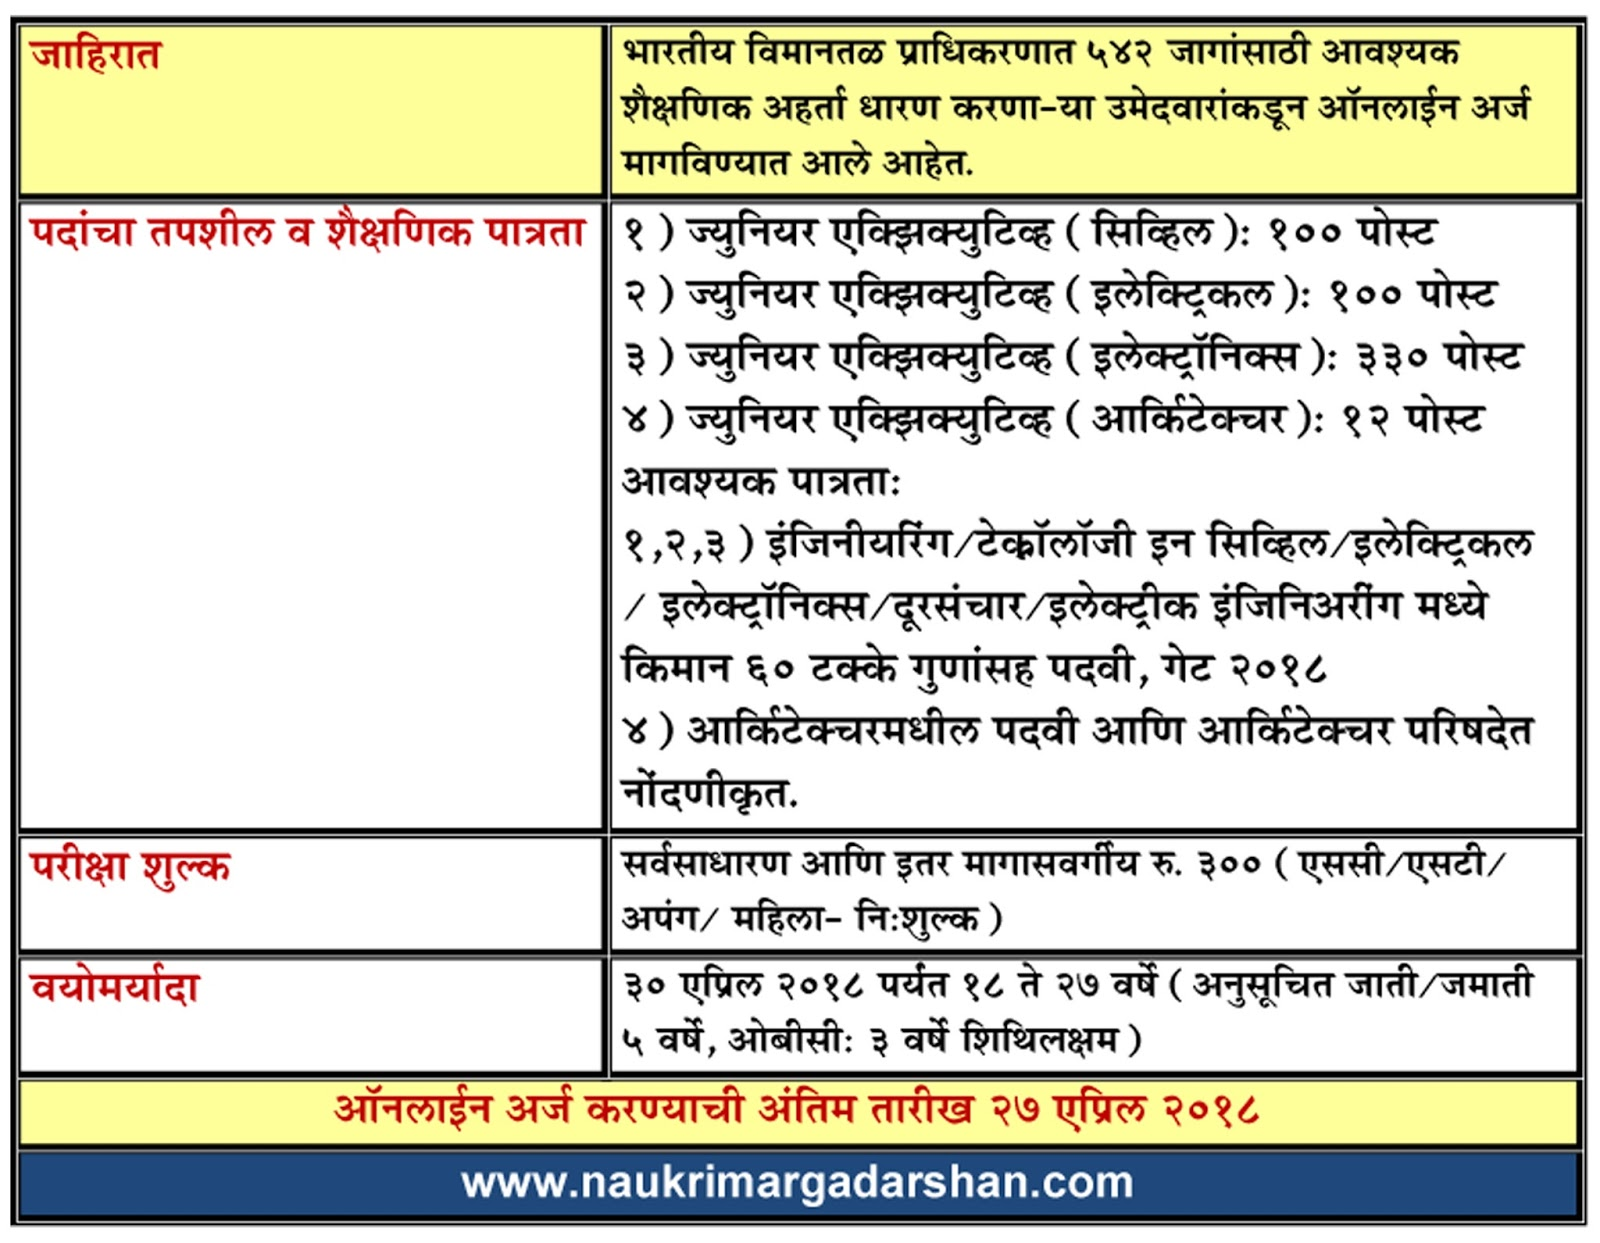 marathi job website, naukri, naukri margadarshan kendra, aai recruitment